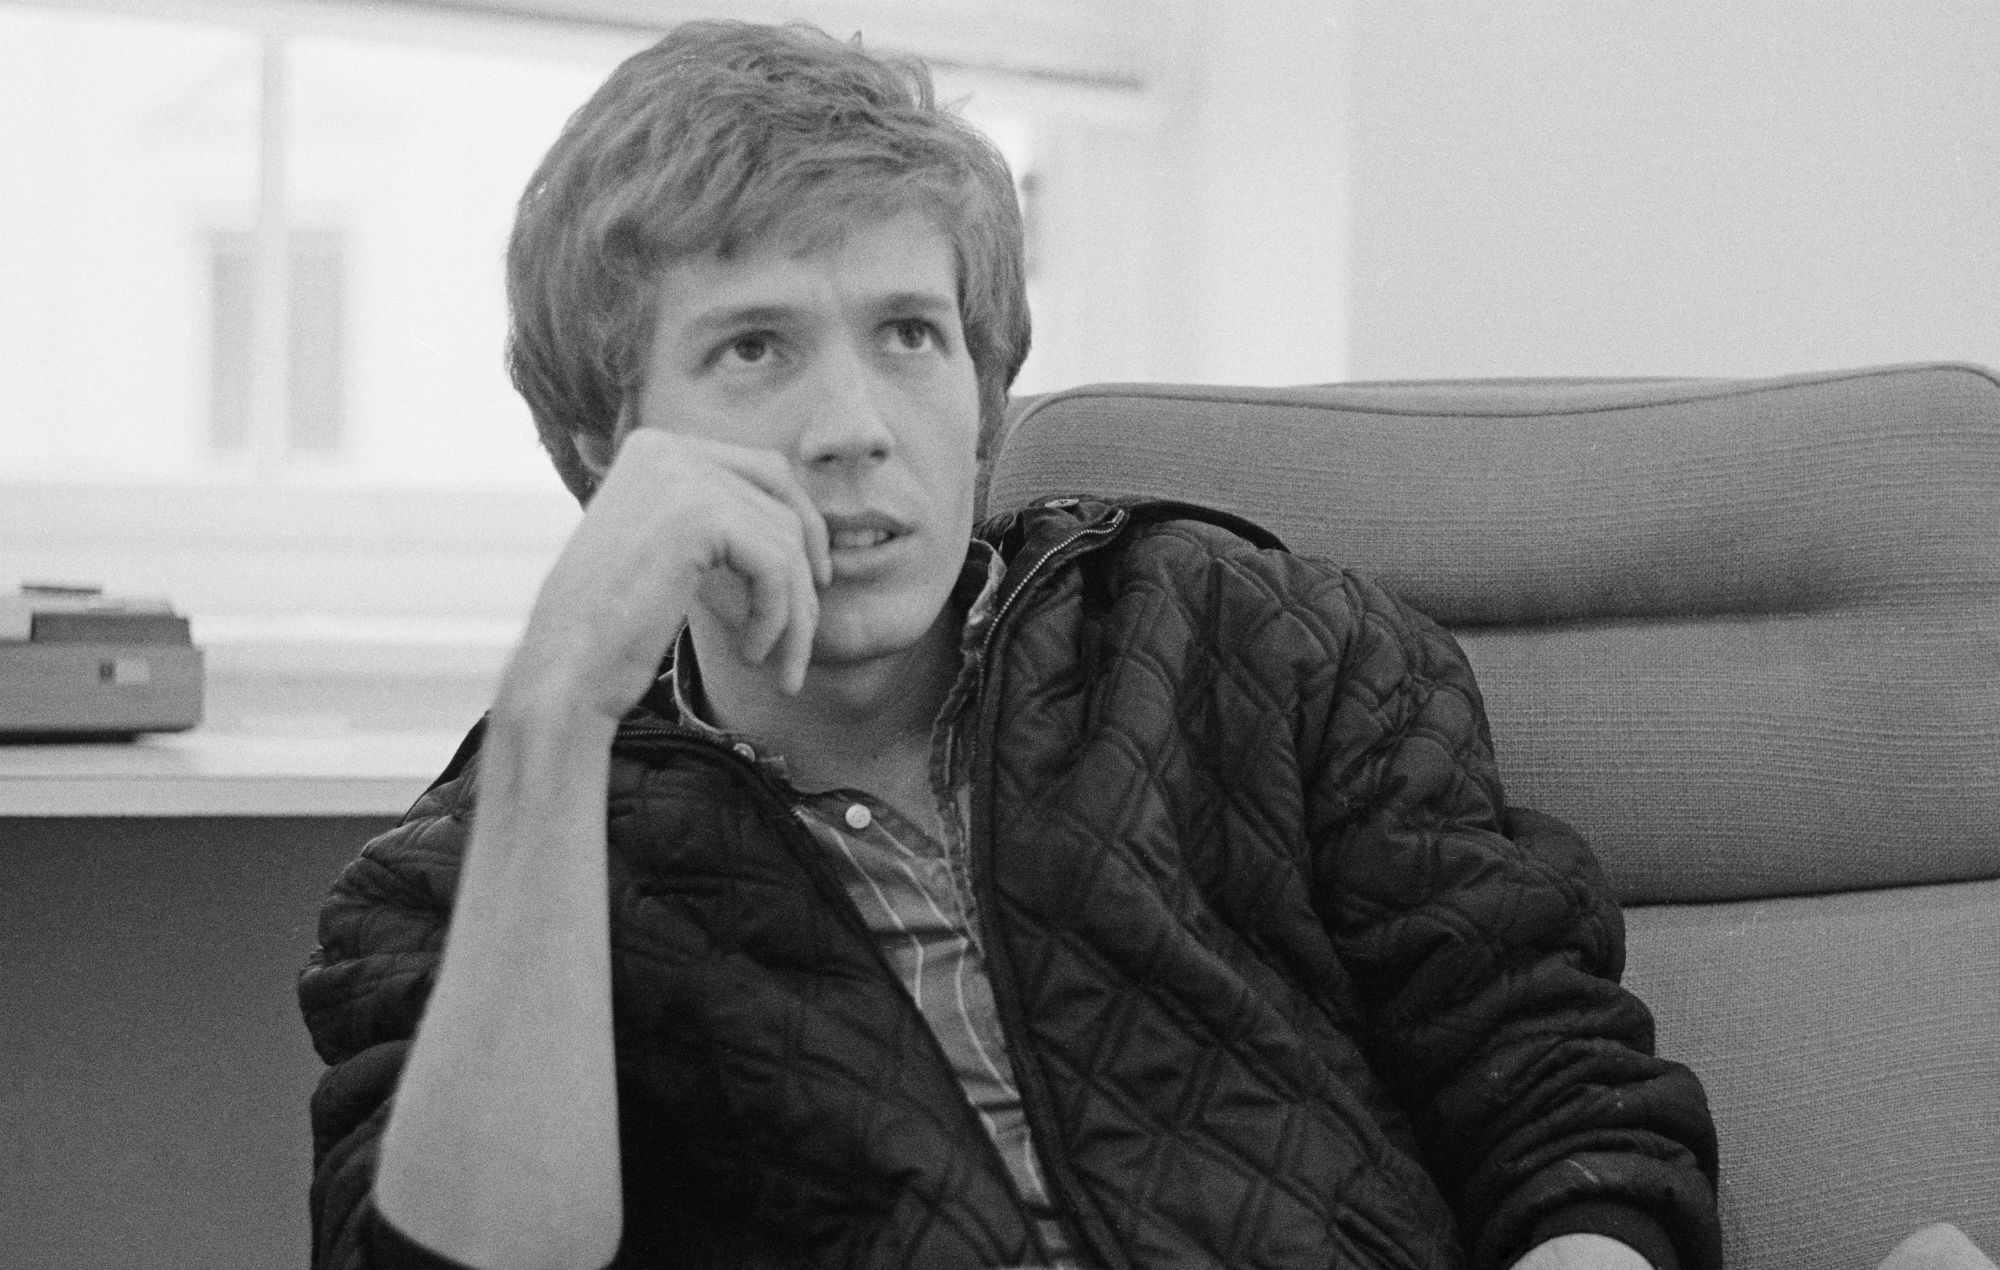 """""""A legacy of extraordinary music"""": Scott Walker has died at the age of 76 https://t.co/lYqGAaxEXx https://t.co/x29d7hy23g"""